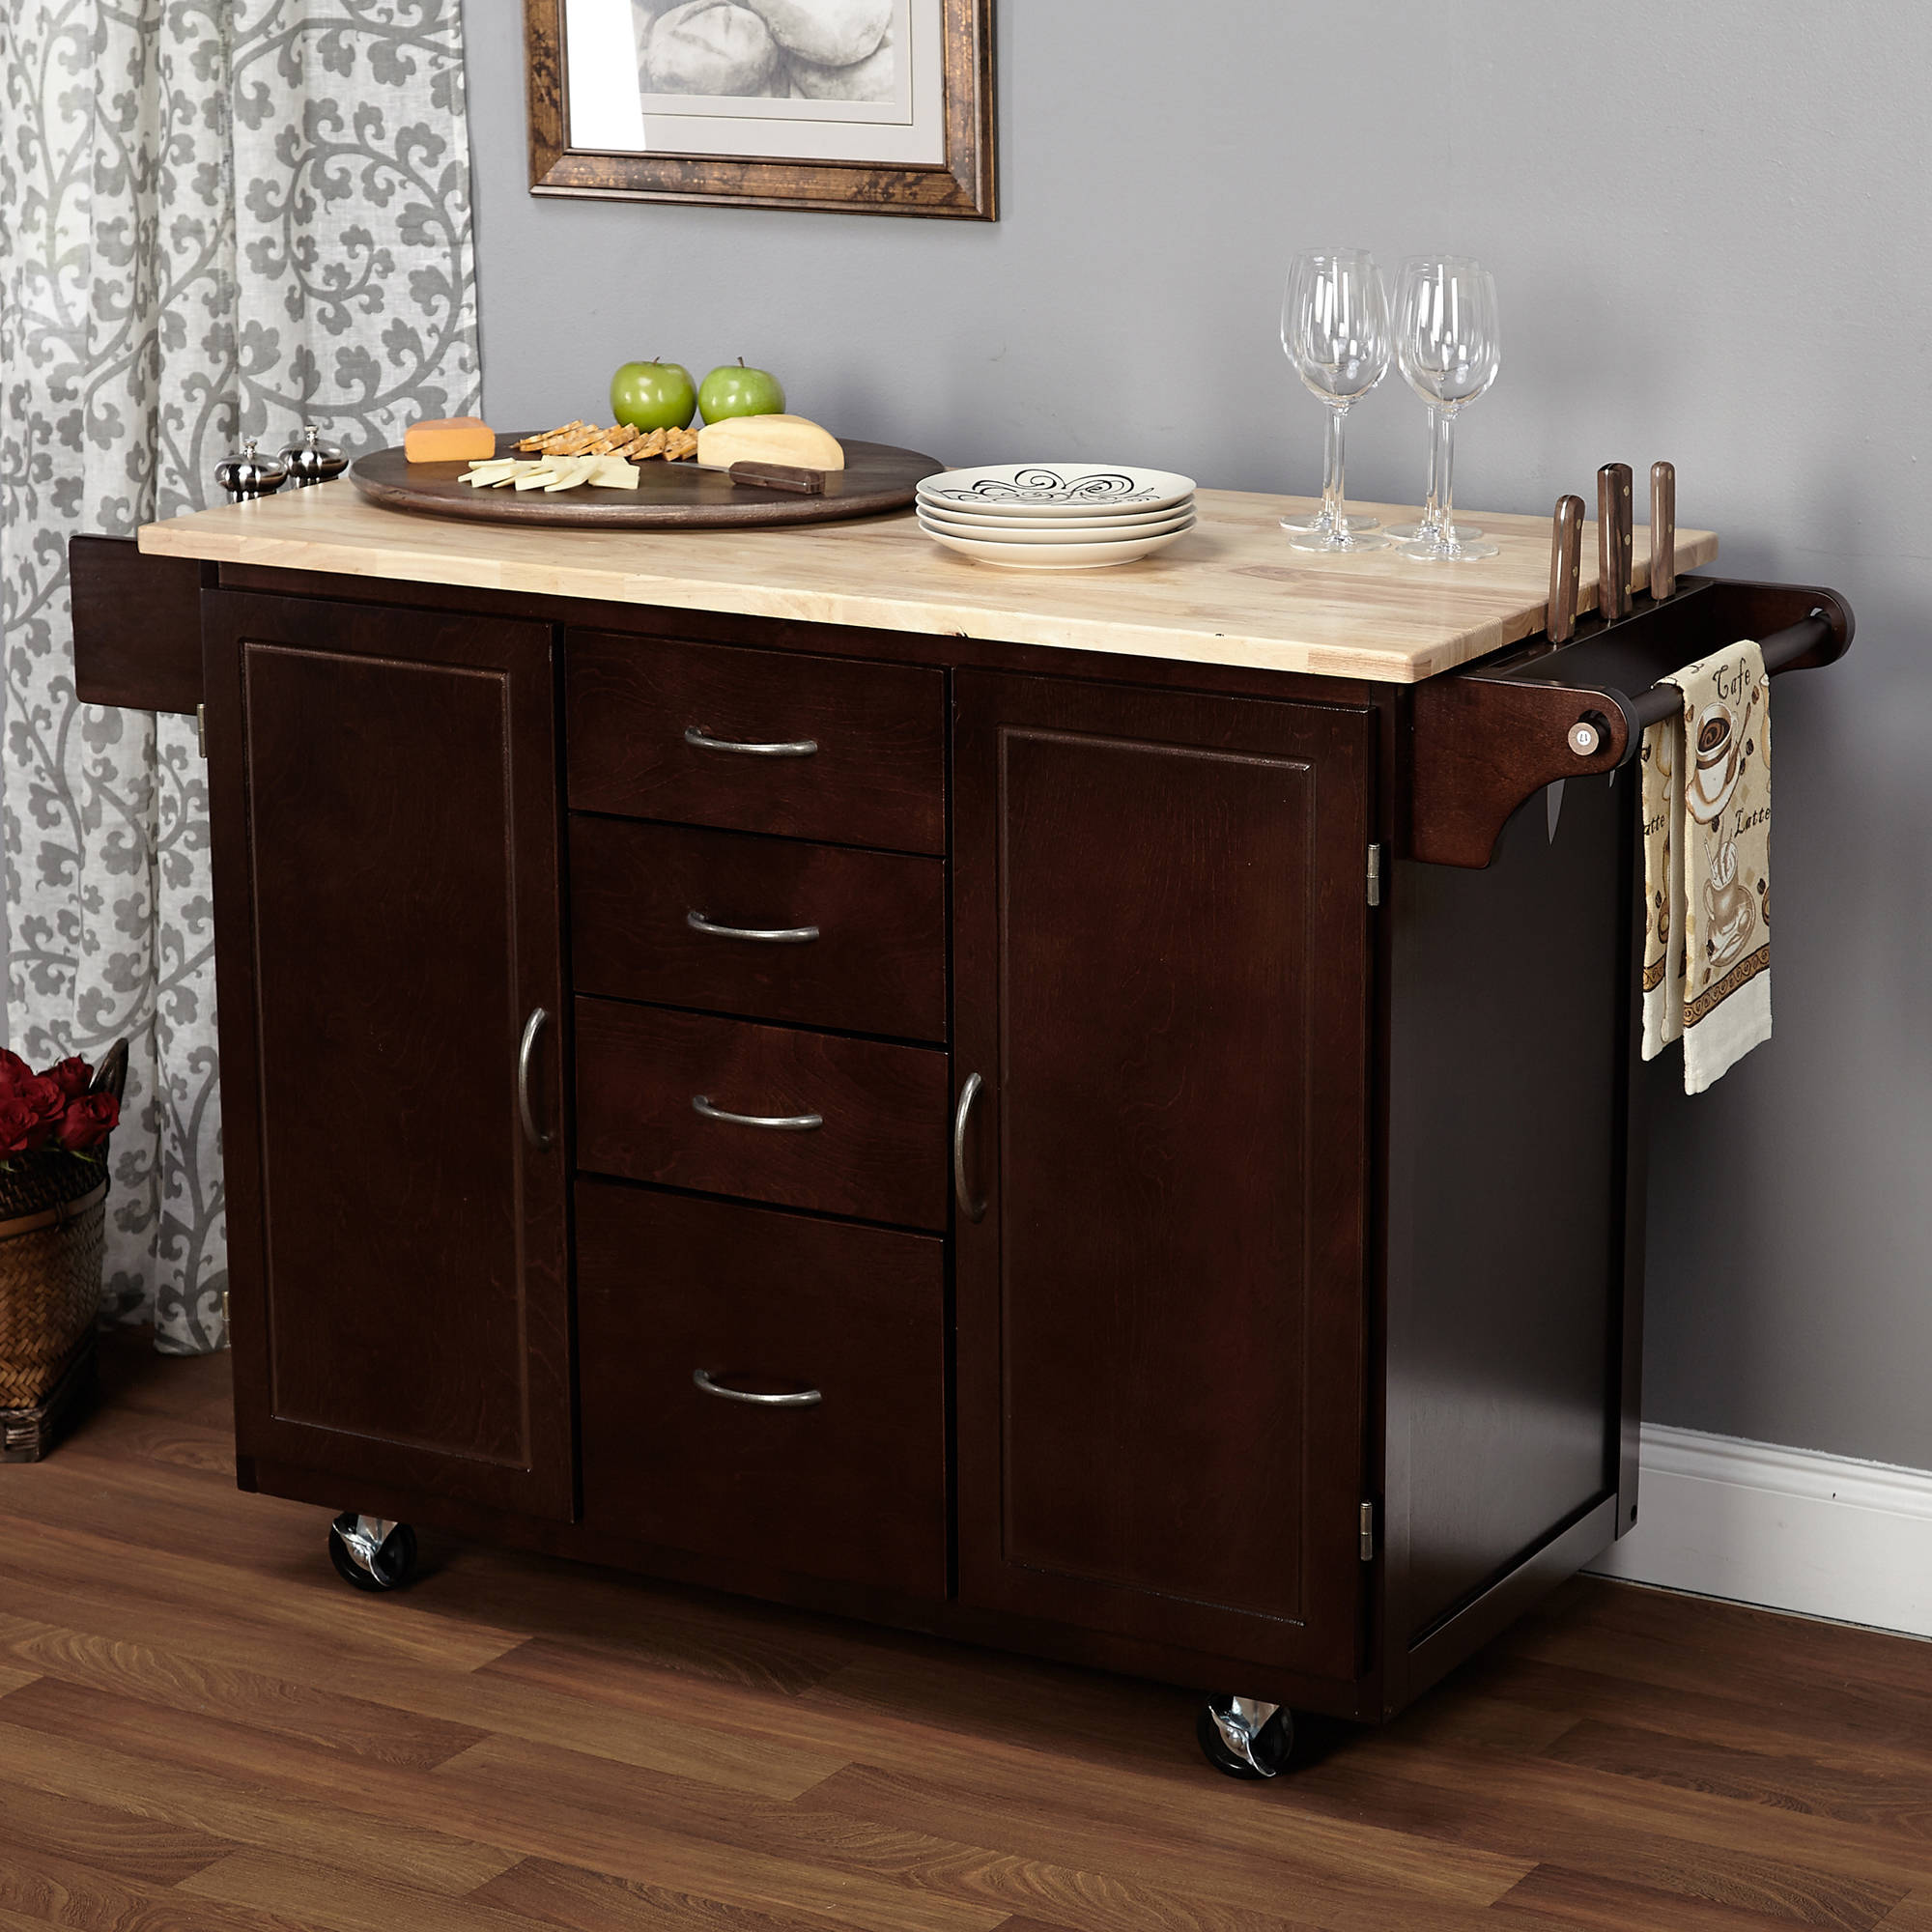 Homegear Open Storage Kitchen Storage Cart Island with Rubberwood ...